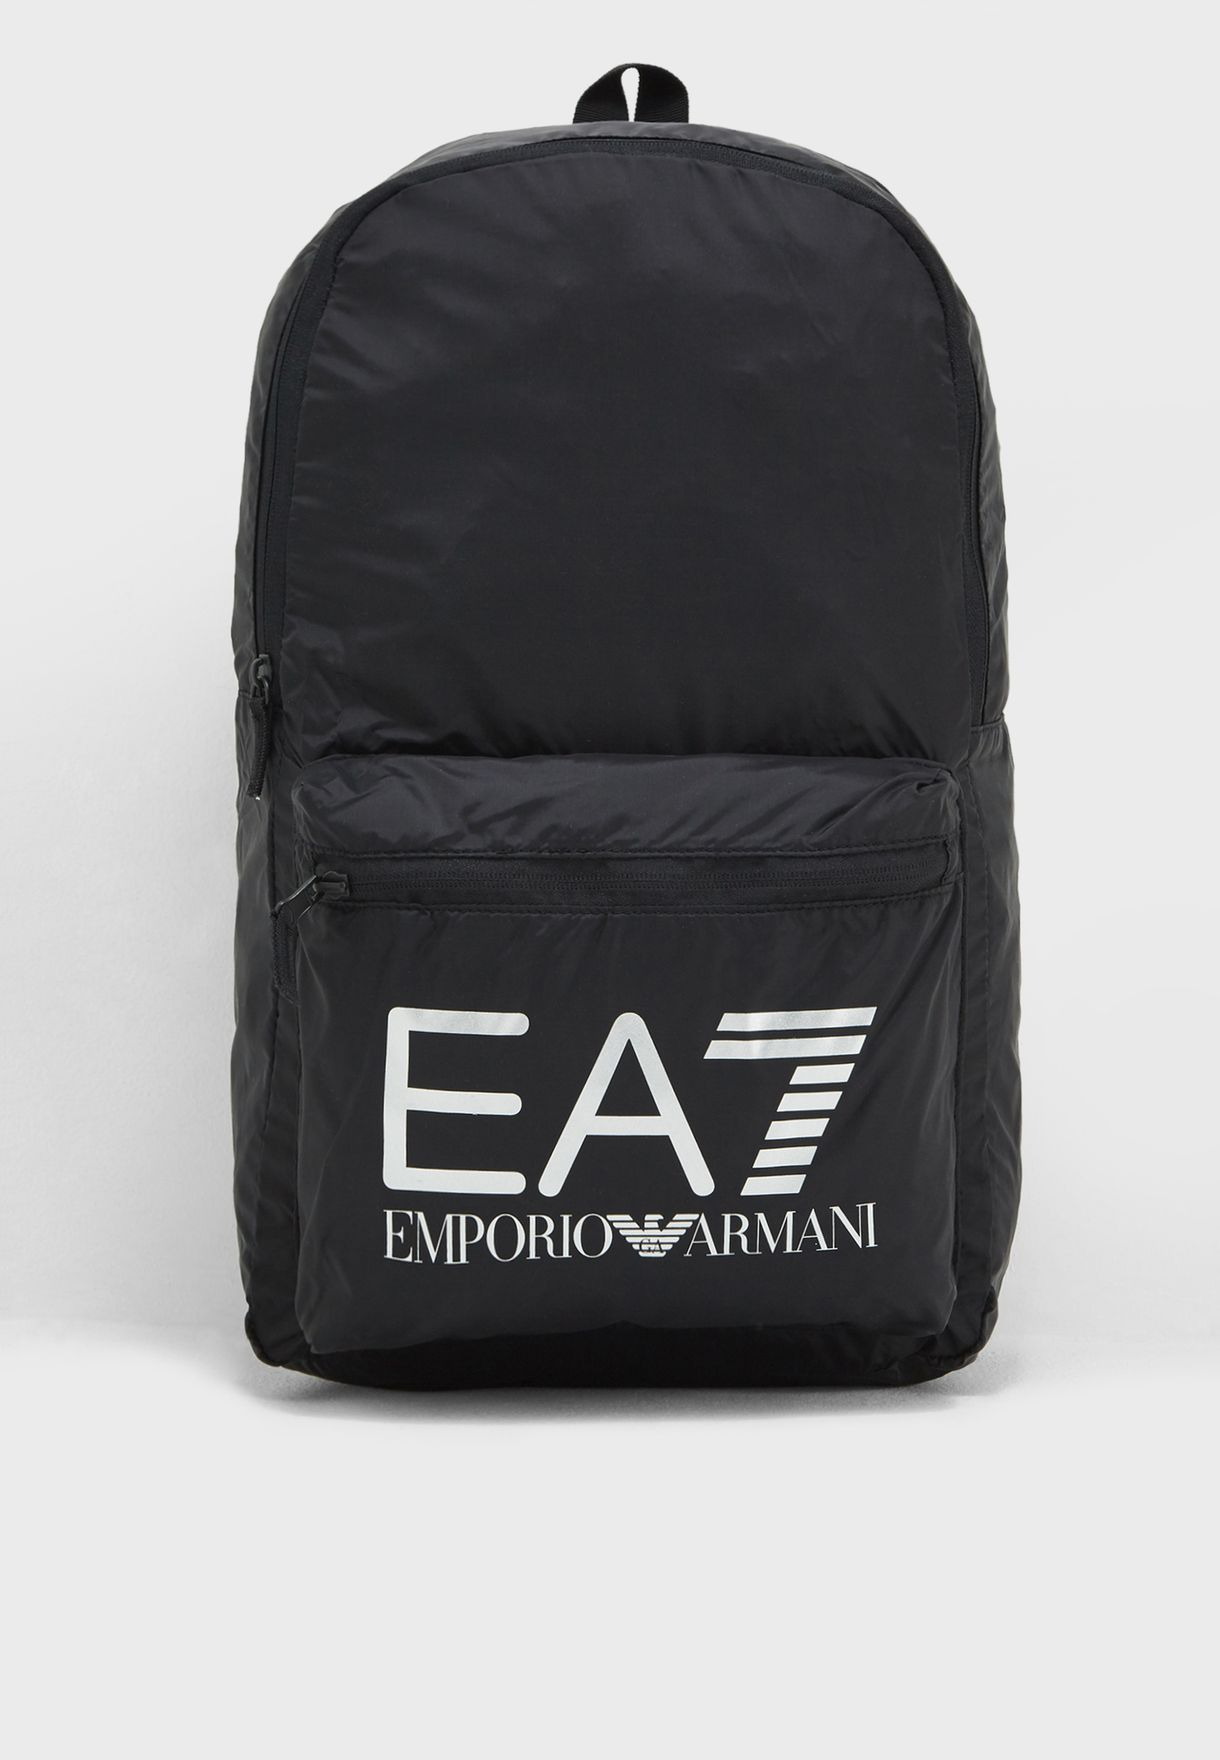 5ad1747b17f5 Shop Ea7 Emporio Armani black Train Foldable Backpack CC801-245002 ...